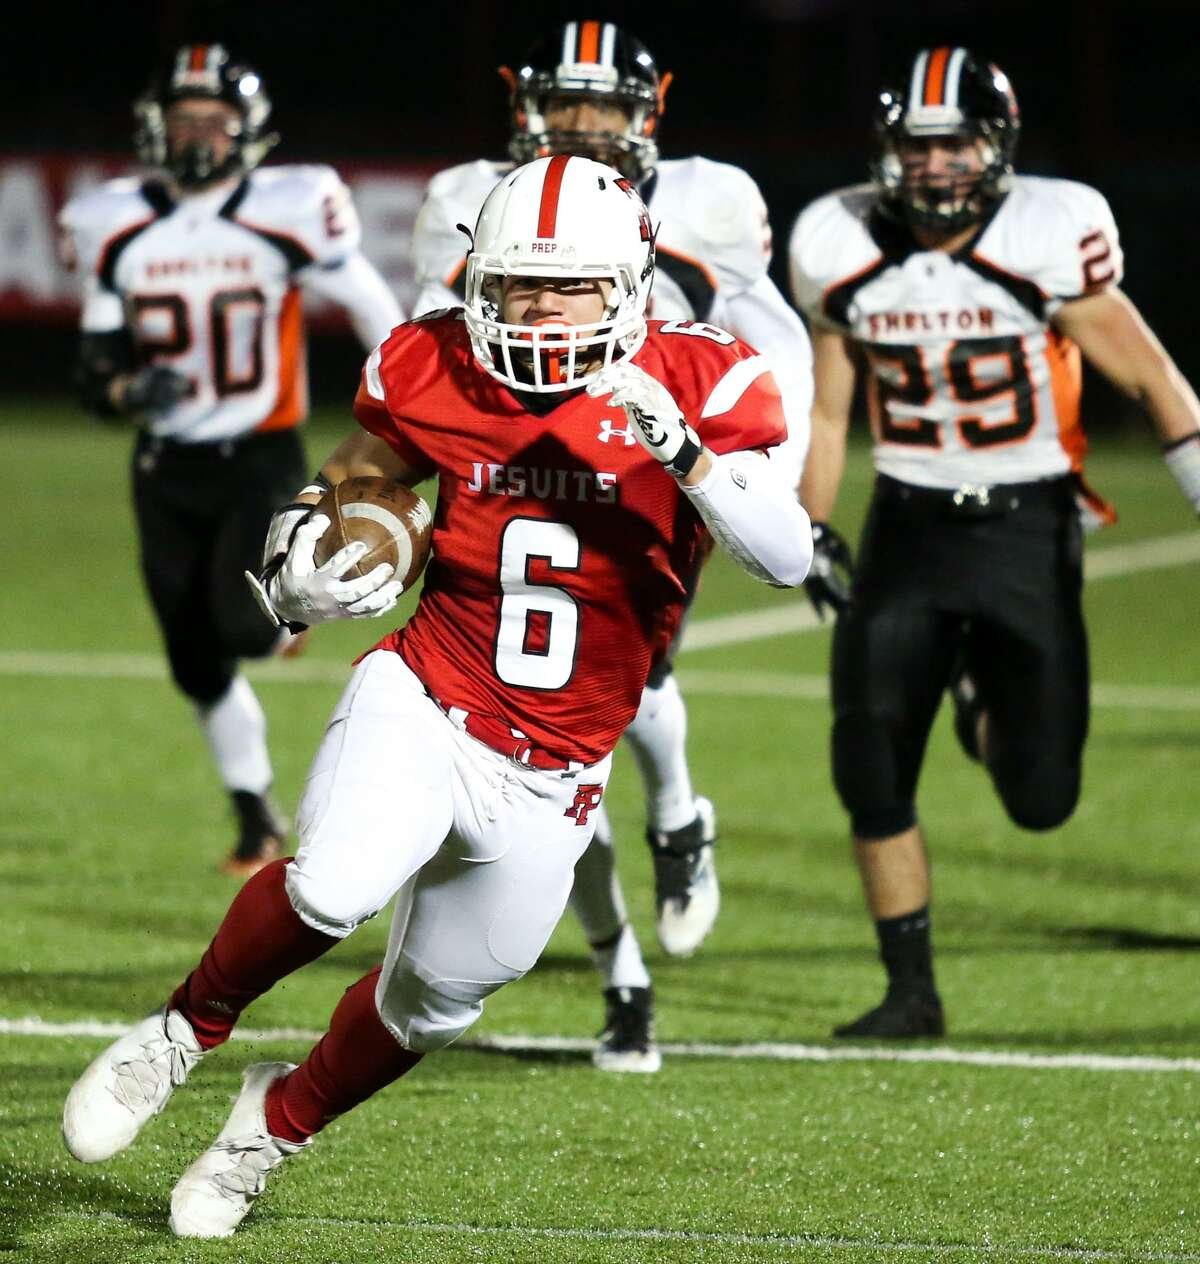 Fairfield Prep running back Douglas Harrison has emerged as a sophomore, rushing for more than 300 yards in the victory over Shelton.